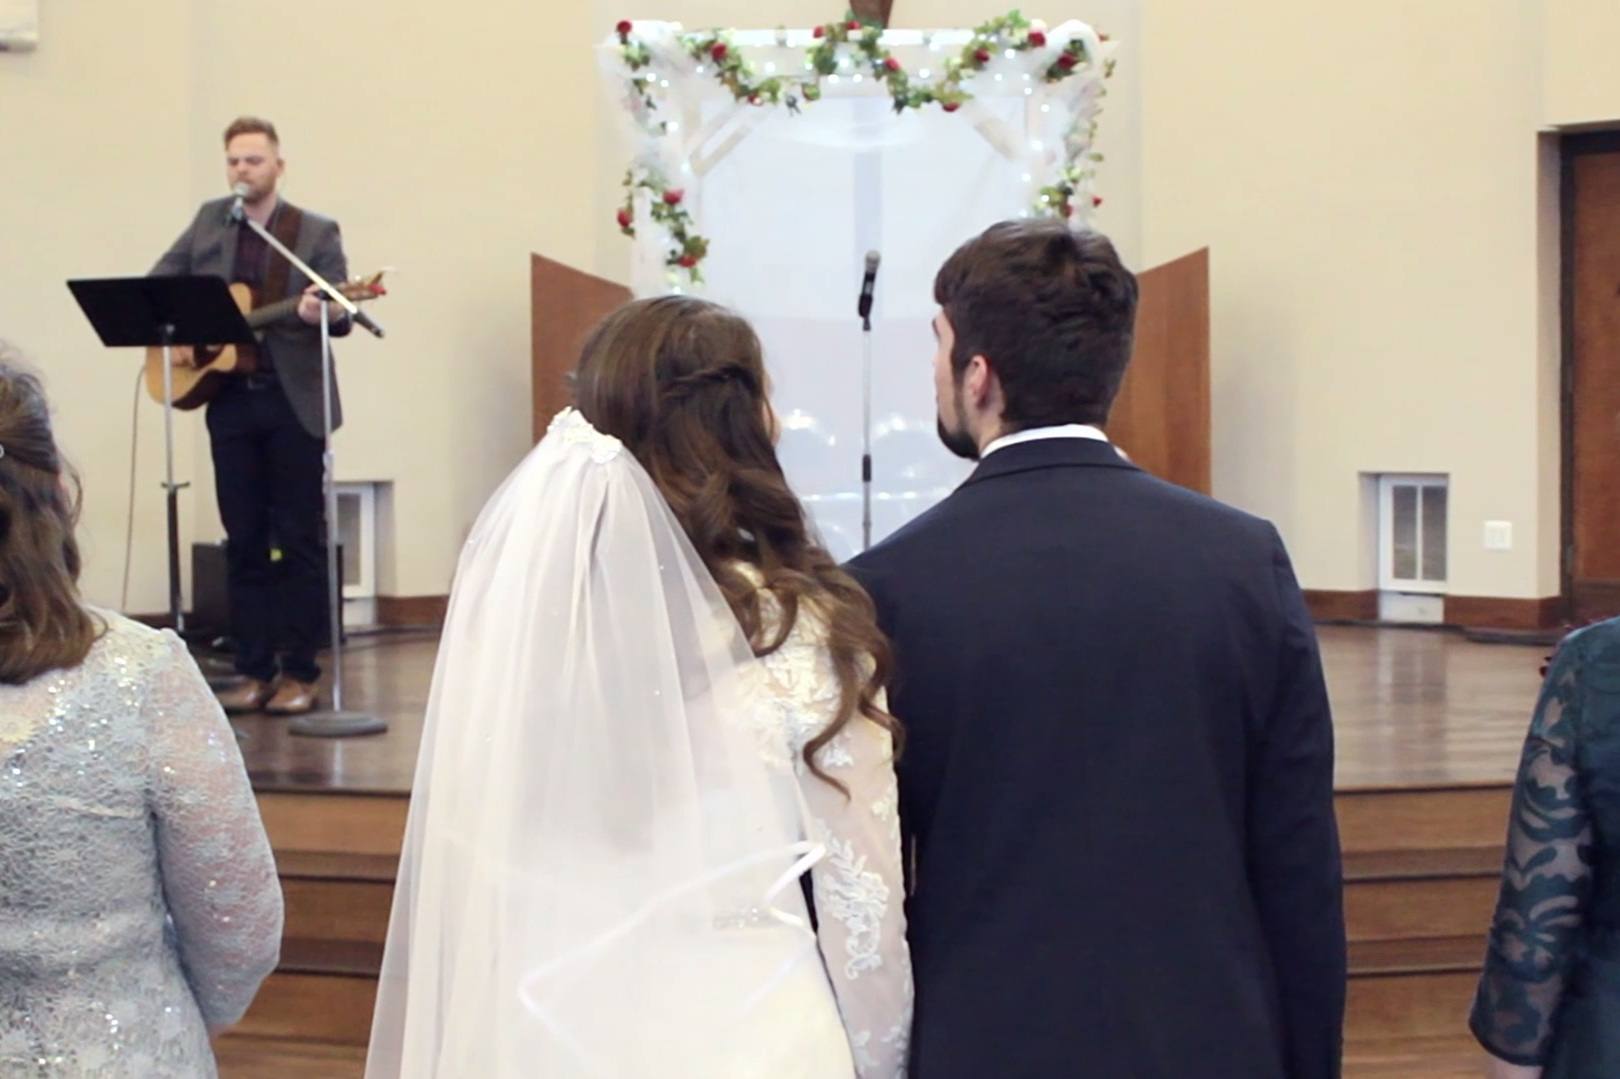 Wedding Videos - MAKE YOUR SPECIAL DAY UNFORGETTABLE with a cinematic highlight video.